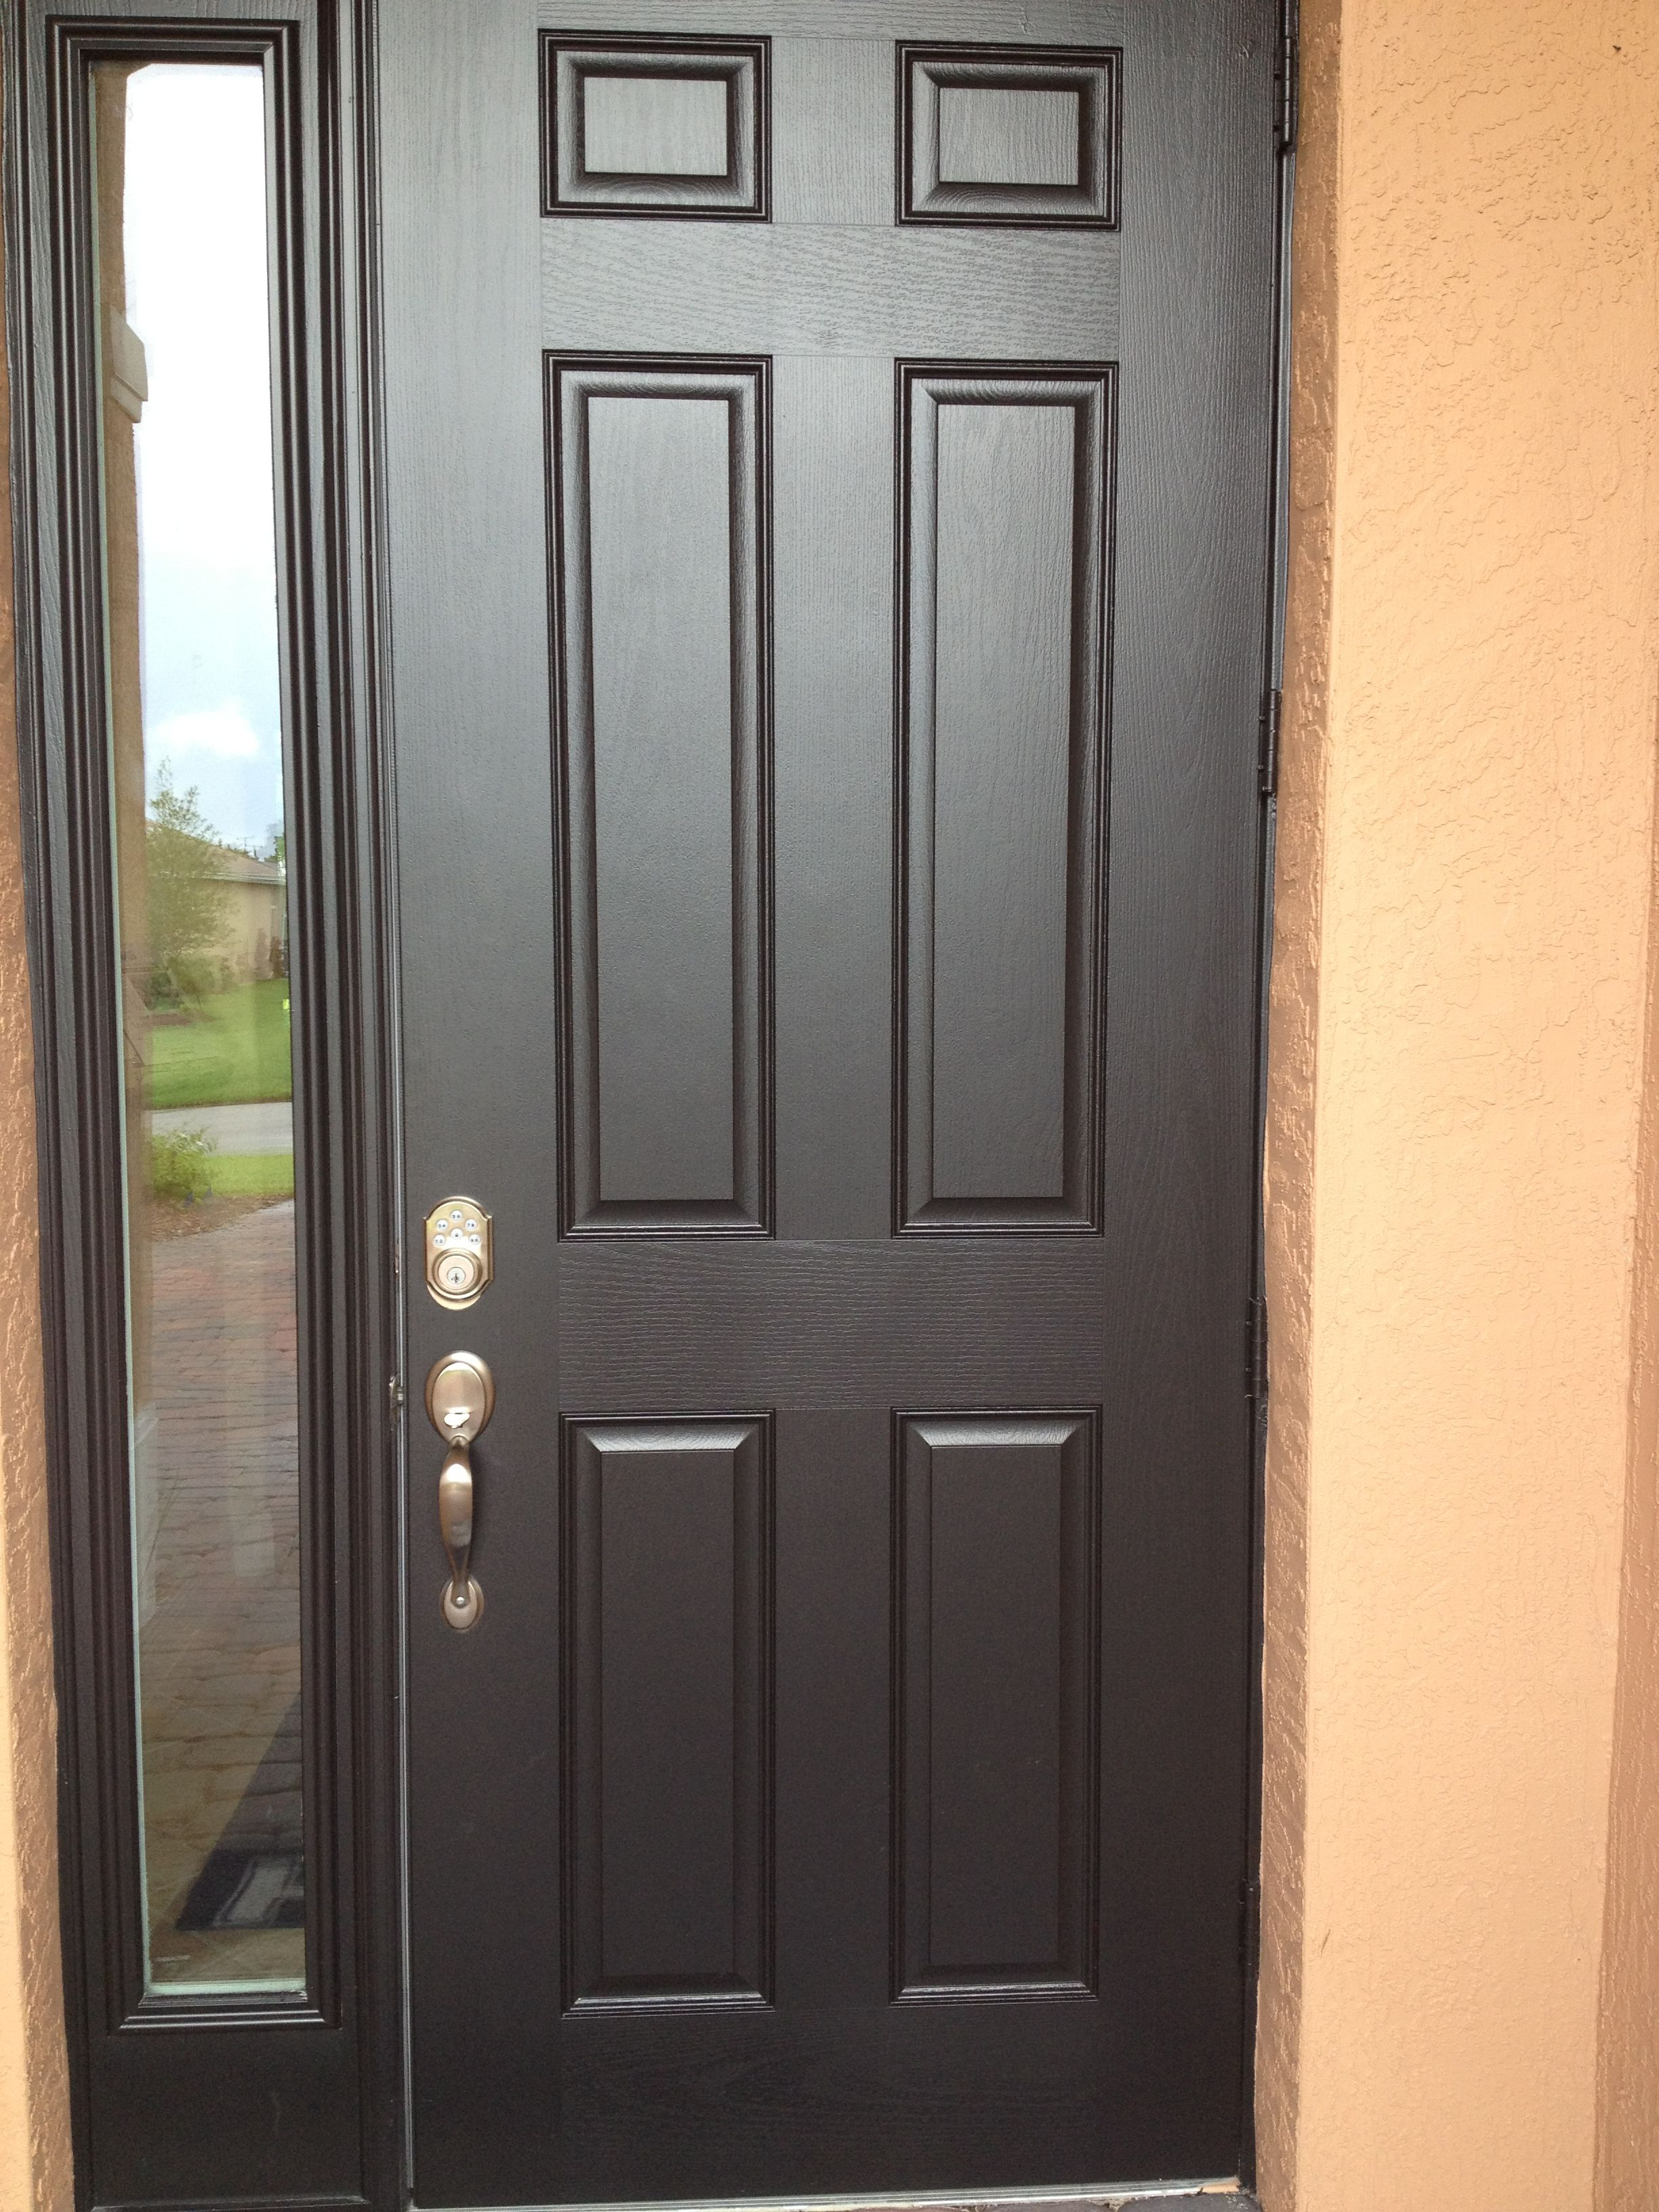 6 Panel Fiber Glass Front Door With Chord Full Lite Side Lite